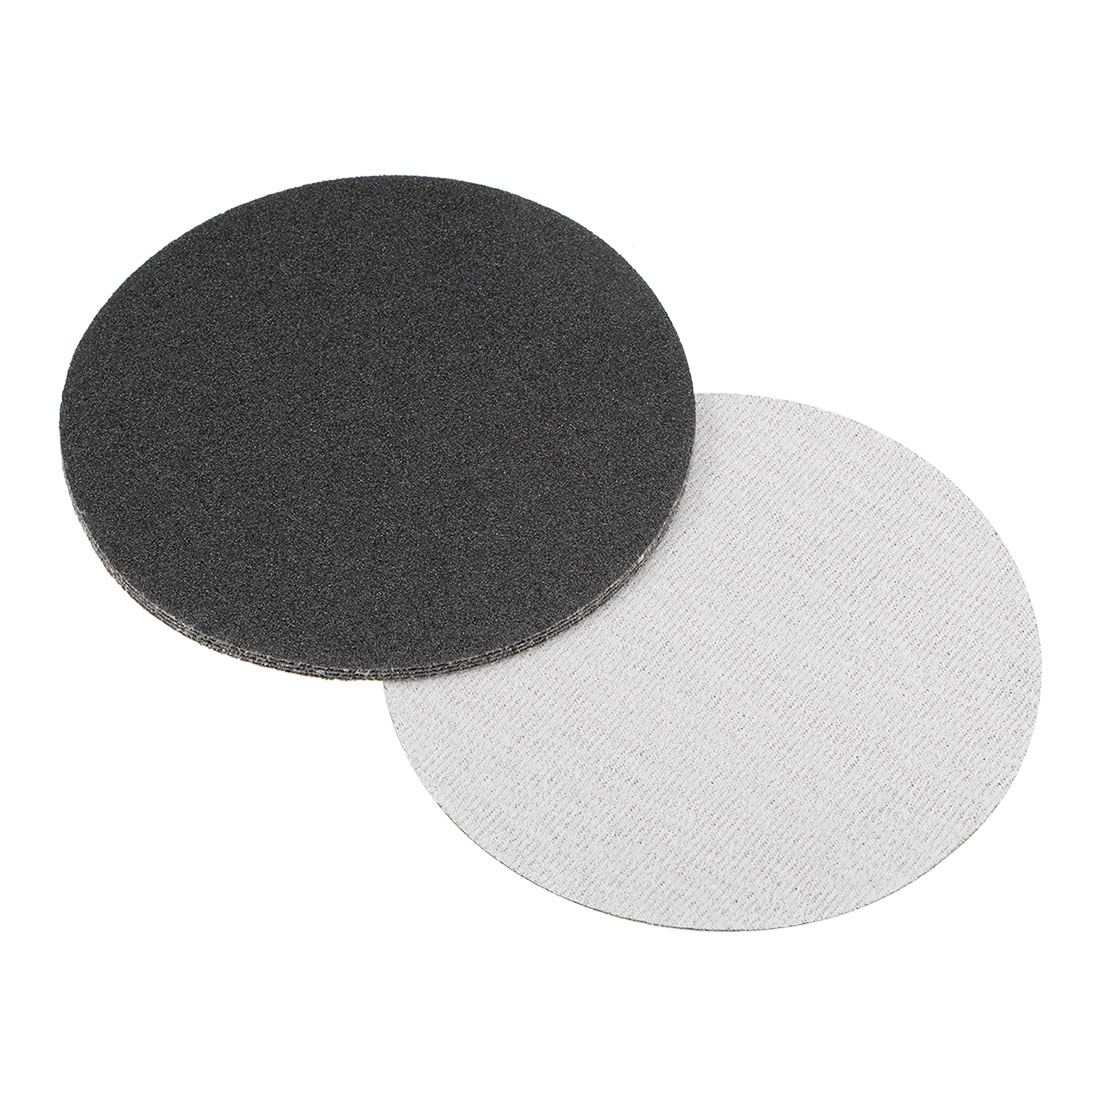 5 inch Wet Dry Discs 60 Grit Hook and Loop Sanding Disc Silicon Carbide 5pcs